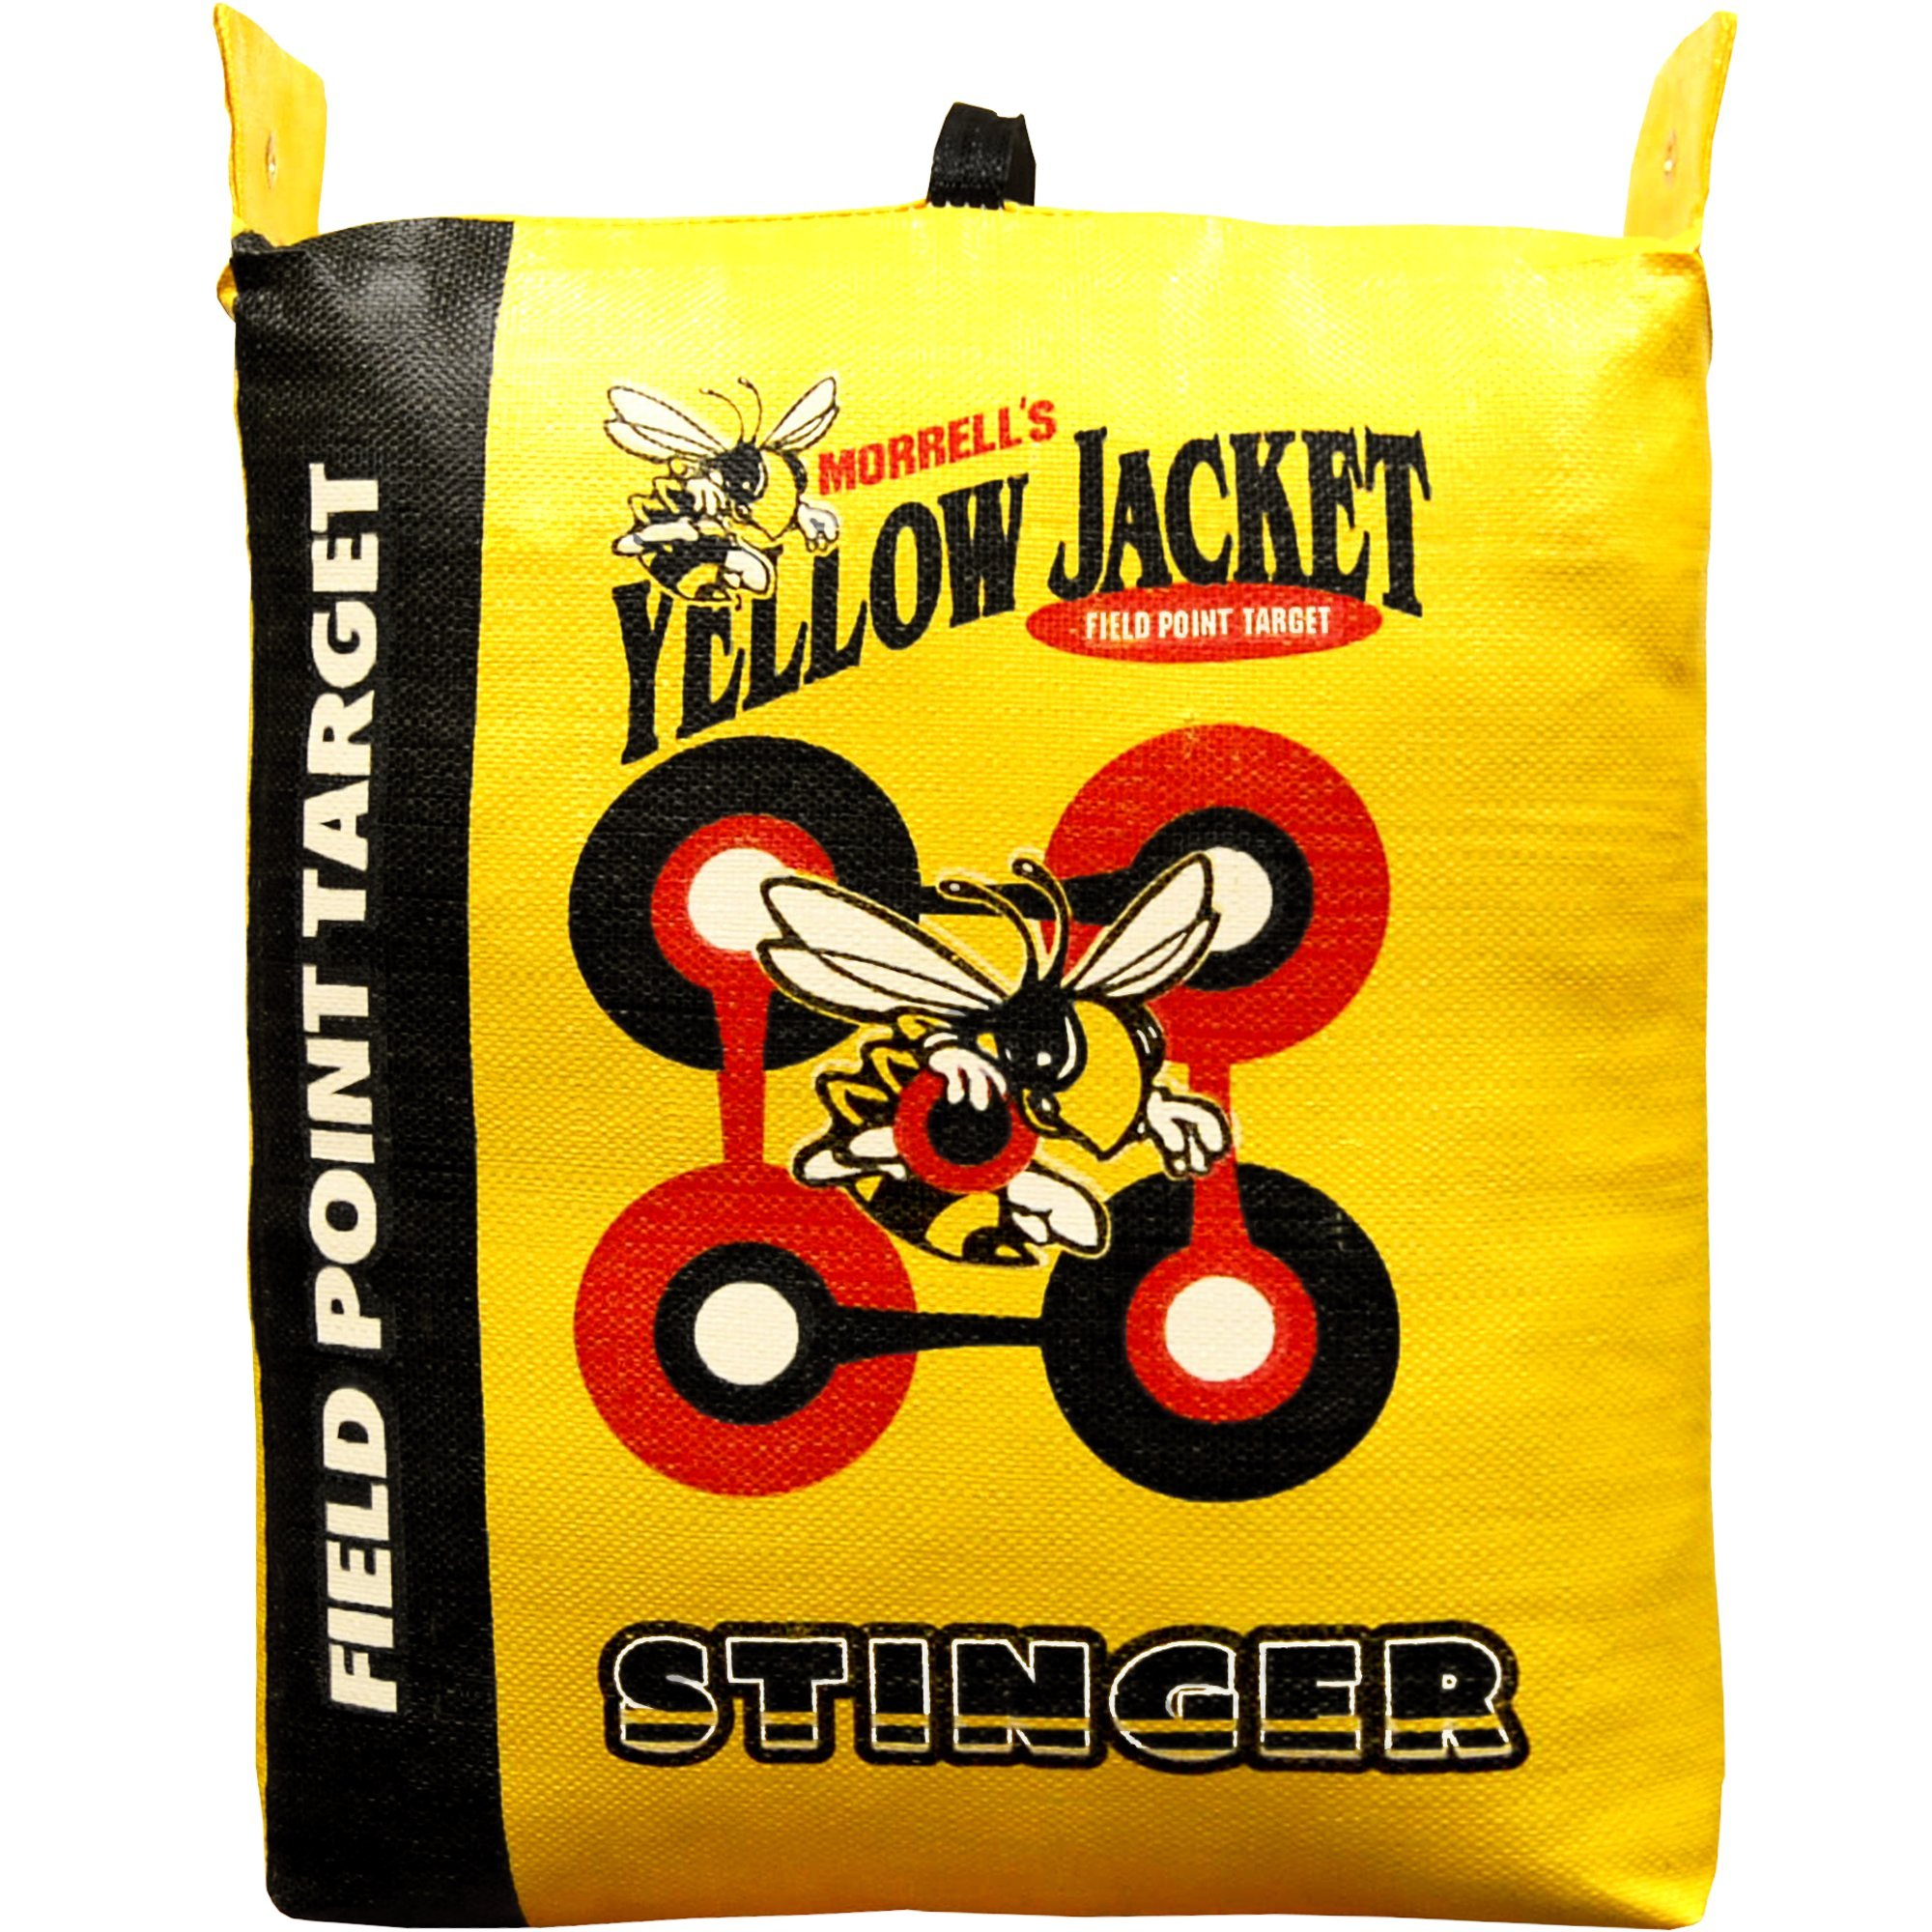 Morrell Yellow Jacket Stinger Field Point Bag Archery Target  - Great for Compound and Traditional Bows by Morrell (Image #7)